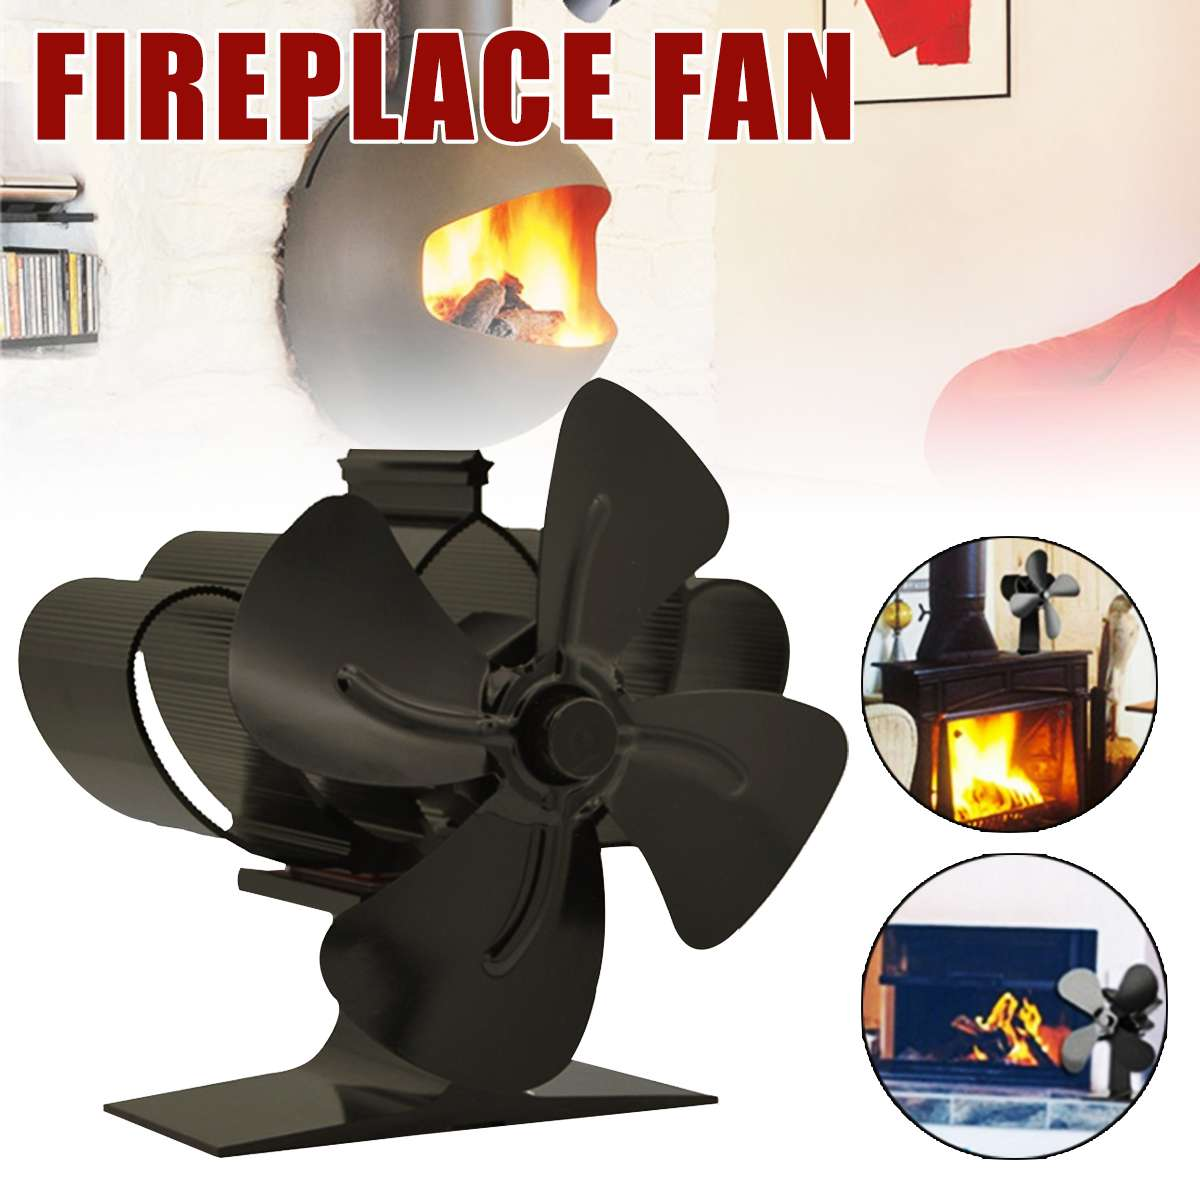 Black Stove Fan 4 Blade Fireplace Fan Heat Powered Wood Burner Eco-Friendly Fan Quiet Home Efficient Heat Distribution